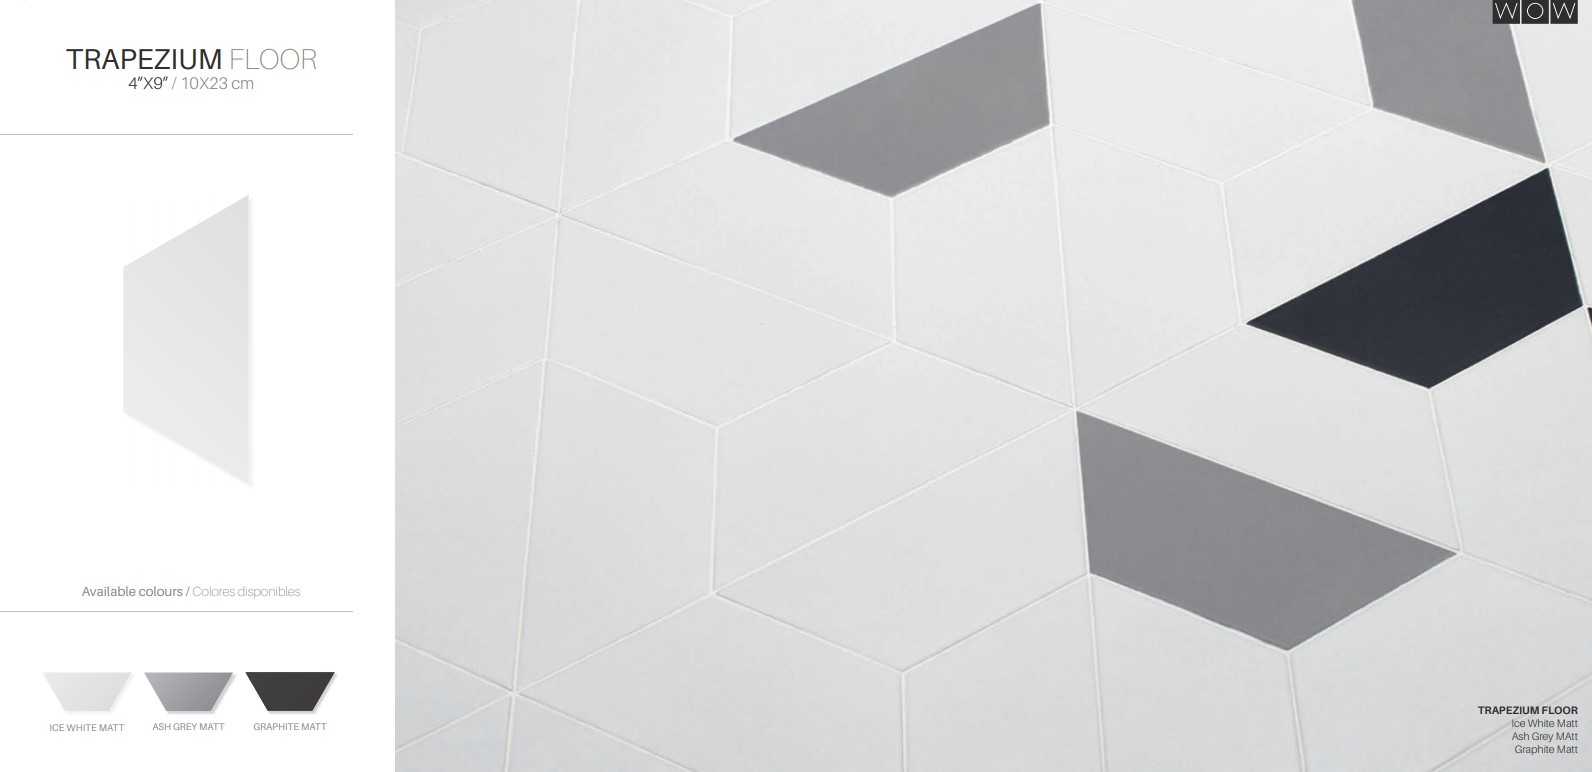 Floor Tiles Ice White Matte and Ash Gray Trapezium